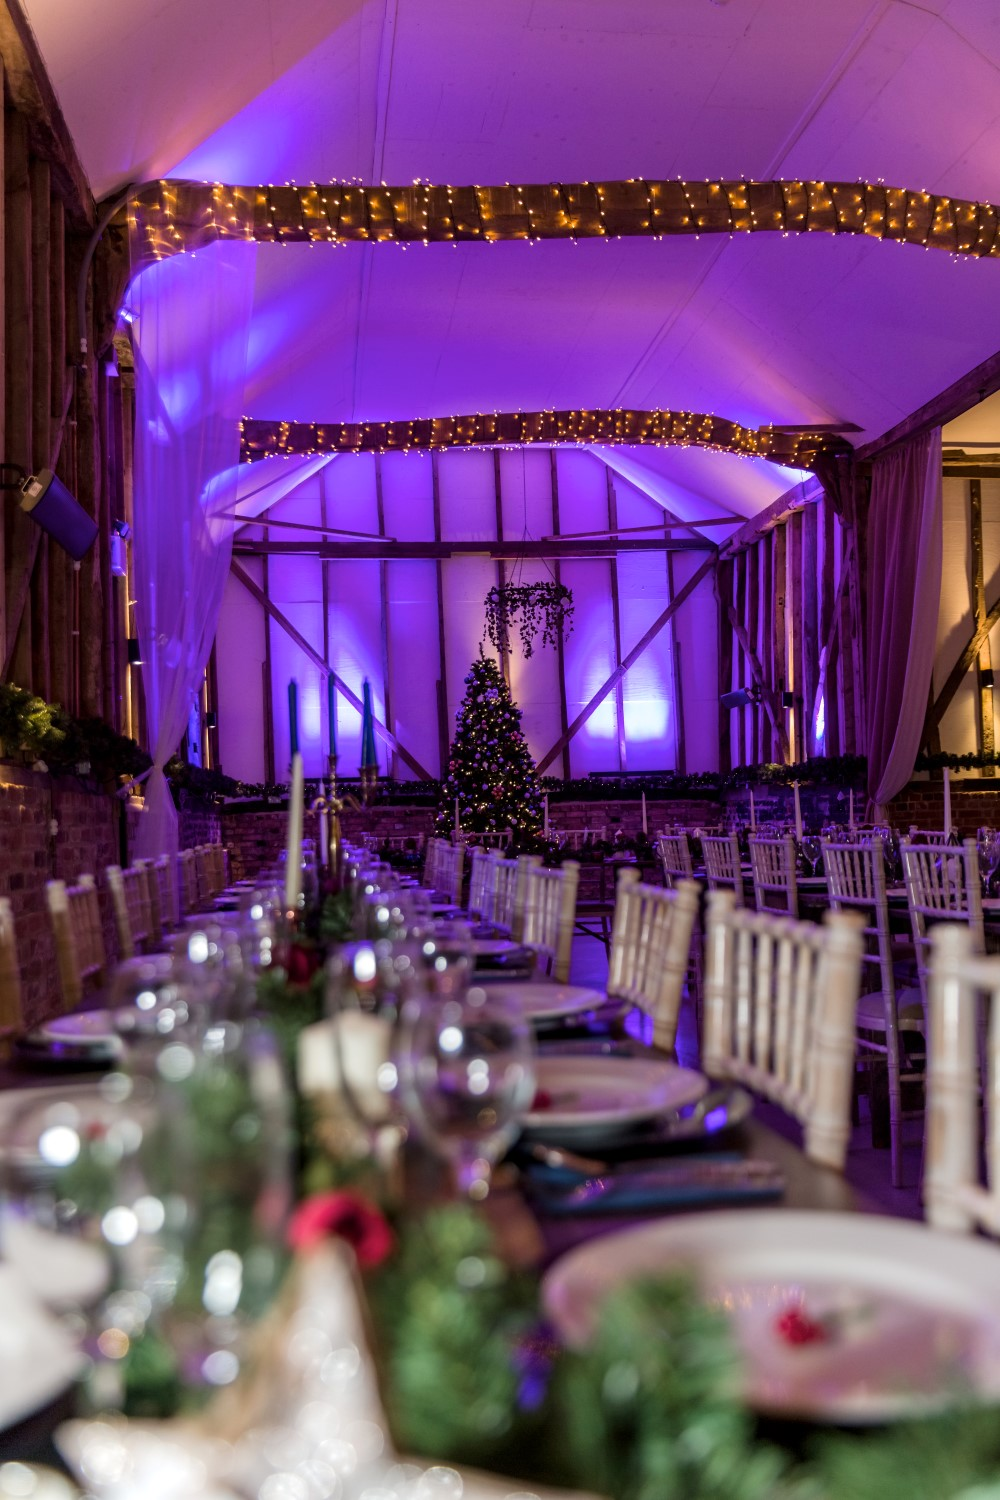 winter wedding - wedding tablescape - wedding reception set up - purple lighting